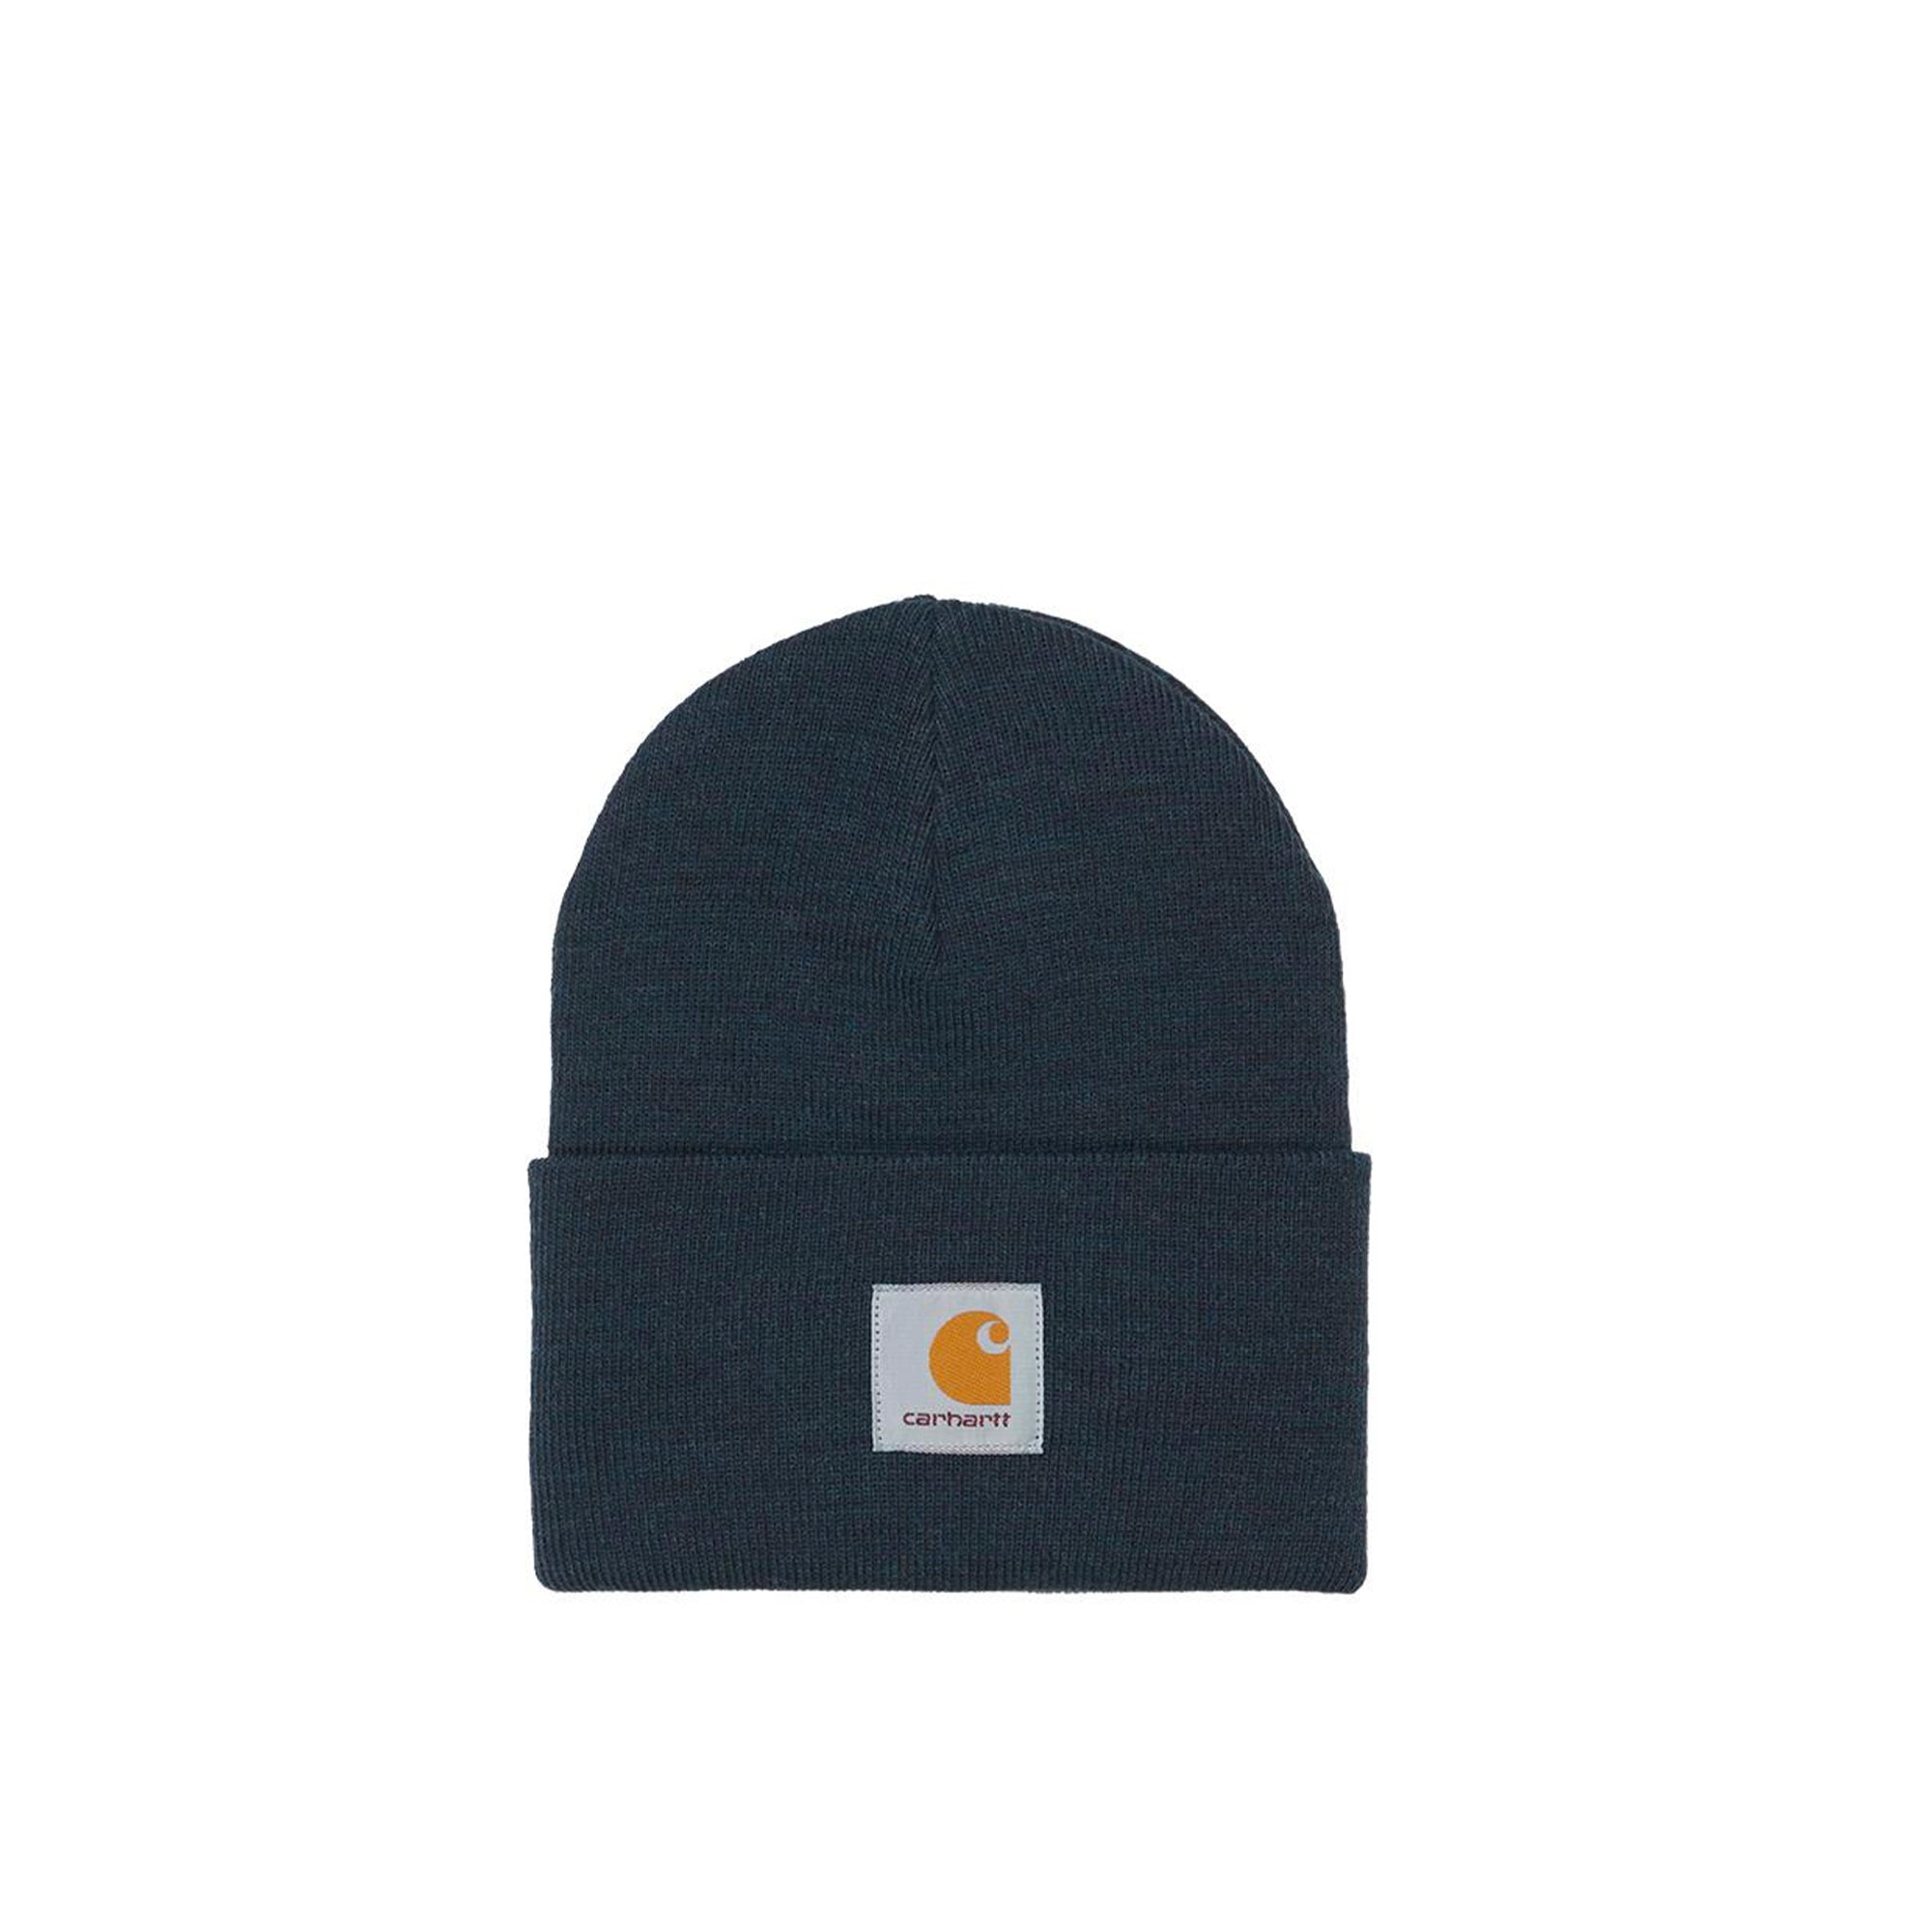 Carhartt WIP Acrylic Watch Hat: Dark Navy Heather - The Union Project